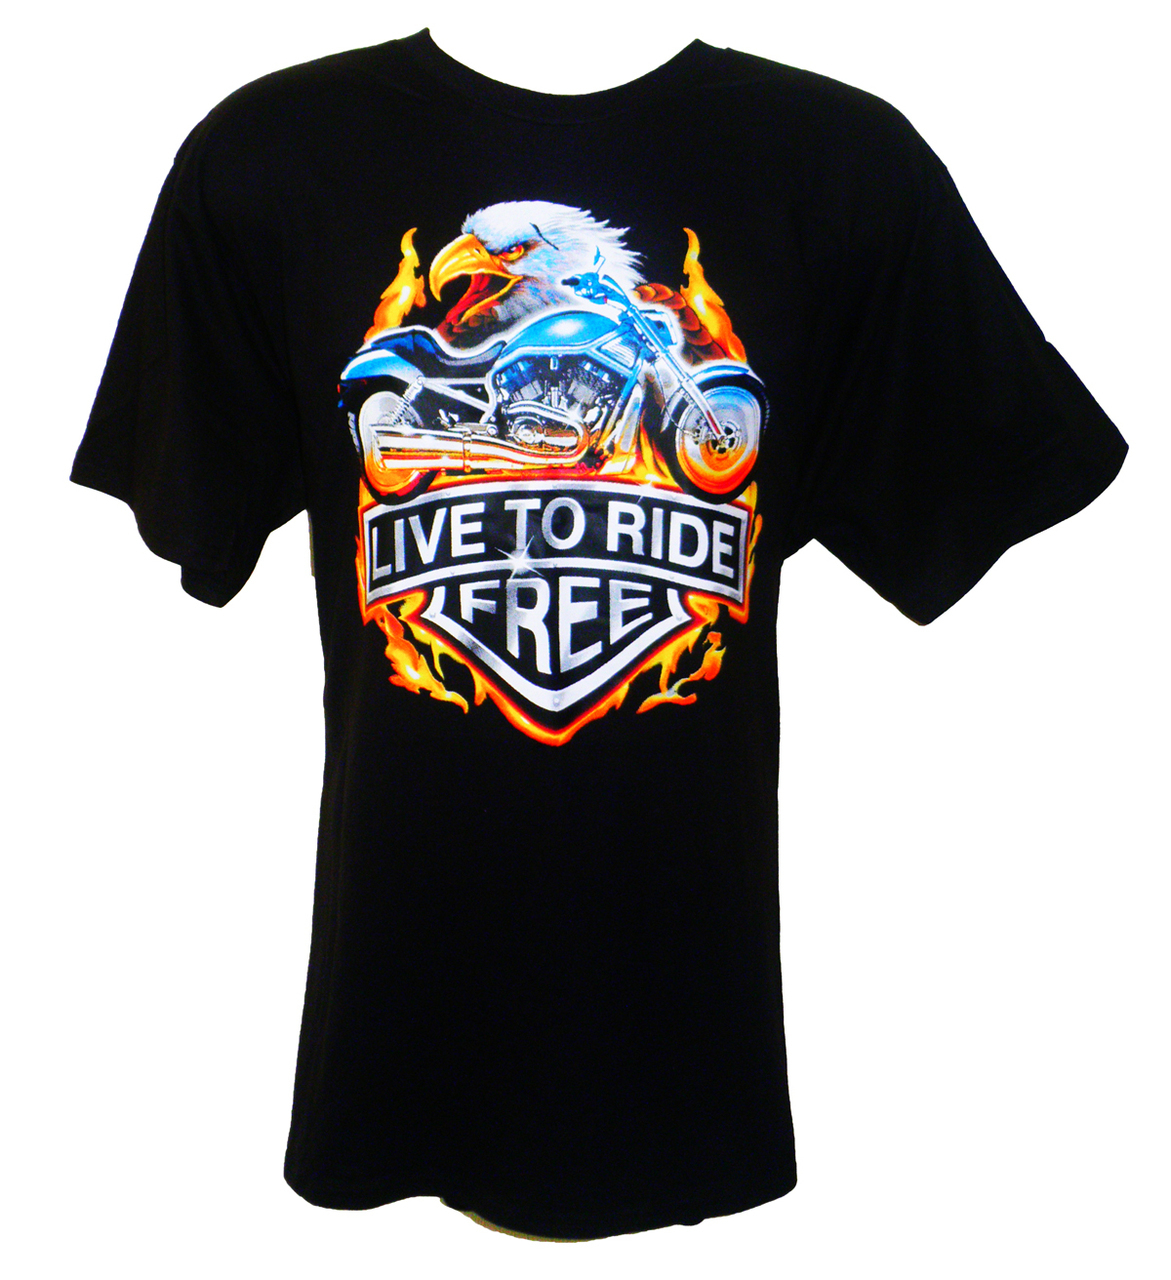 Live to Ride Free T-Shirt